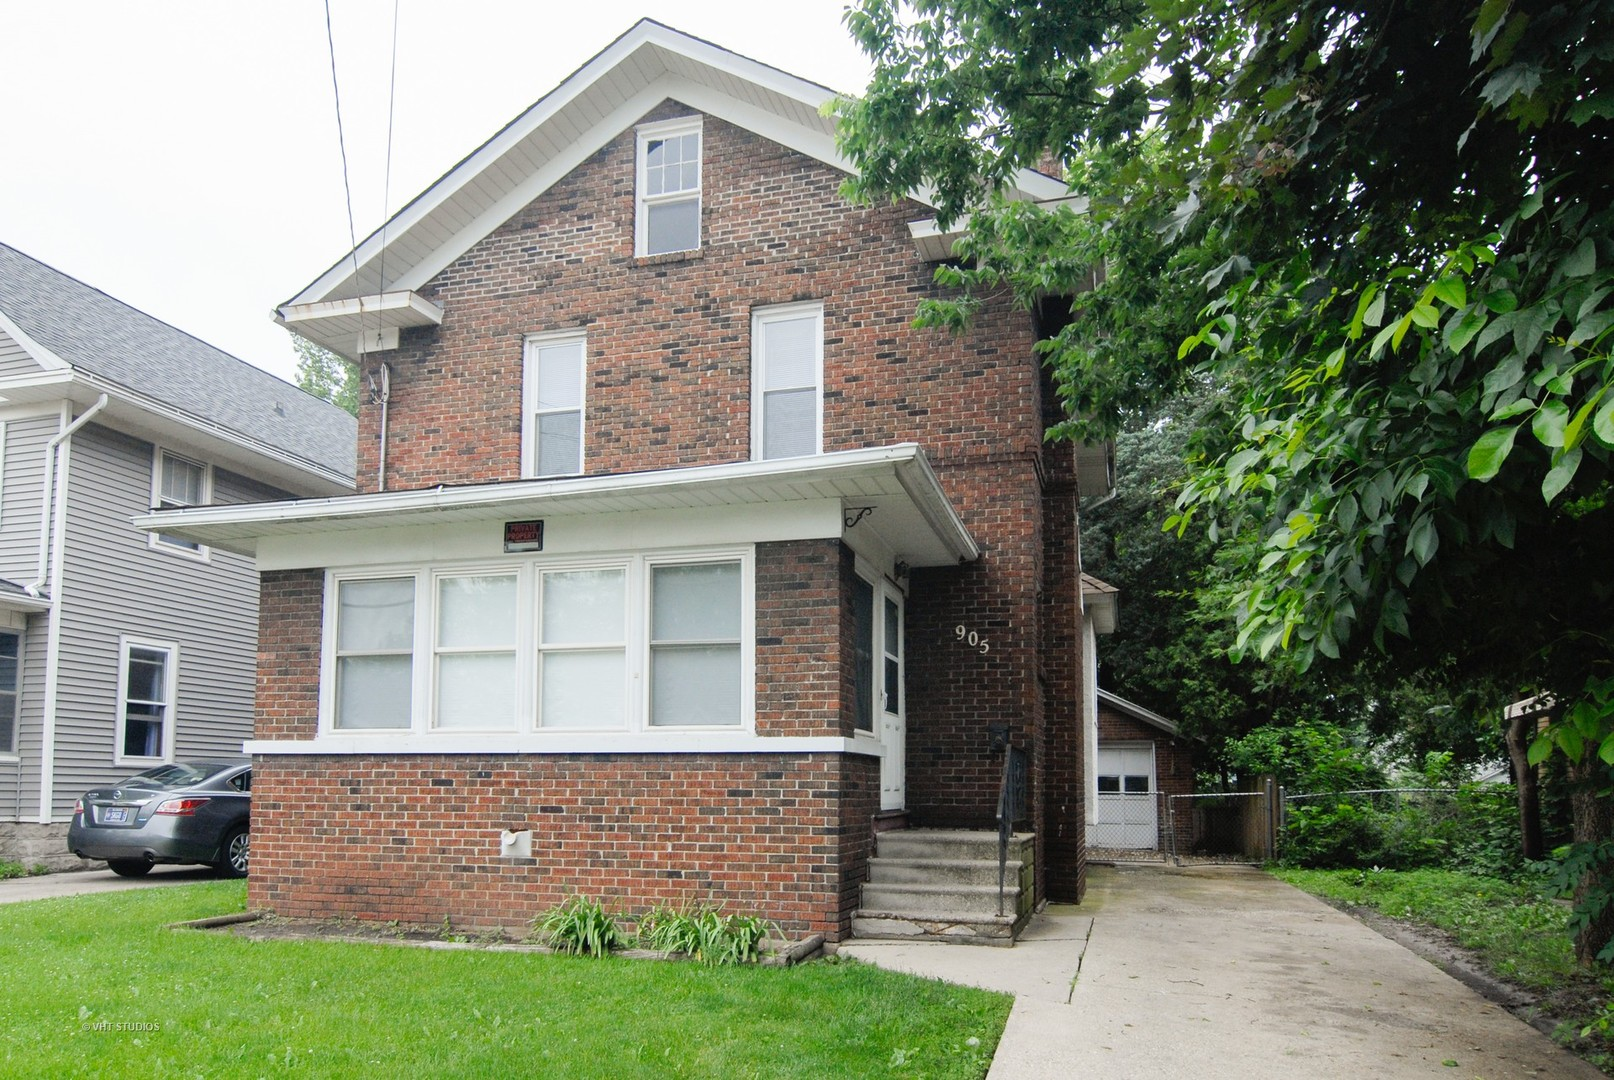 905 5th Street   AURORA Illinois 60505